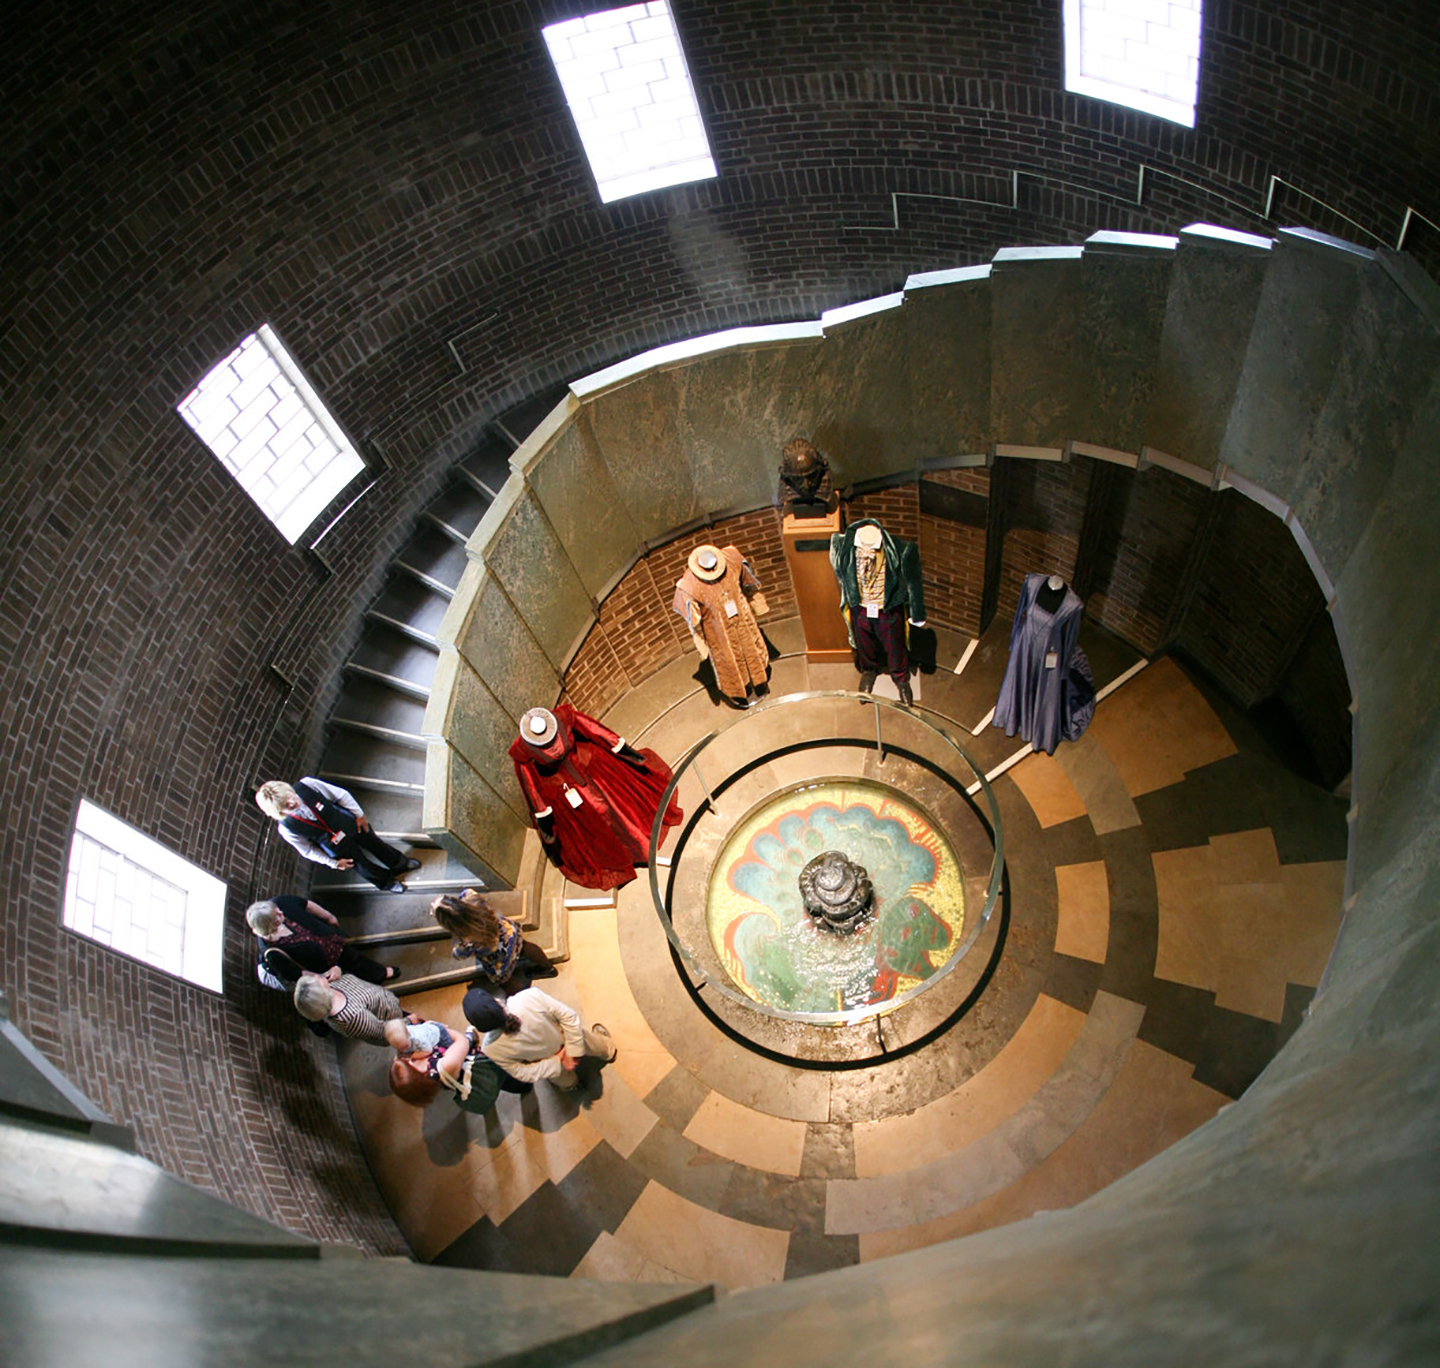 View of costumes at the bottom of a spiral staircase